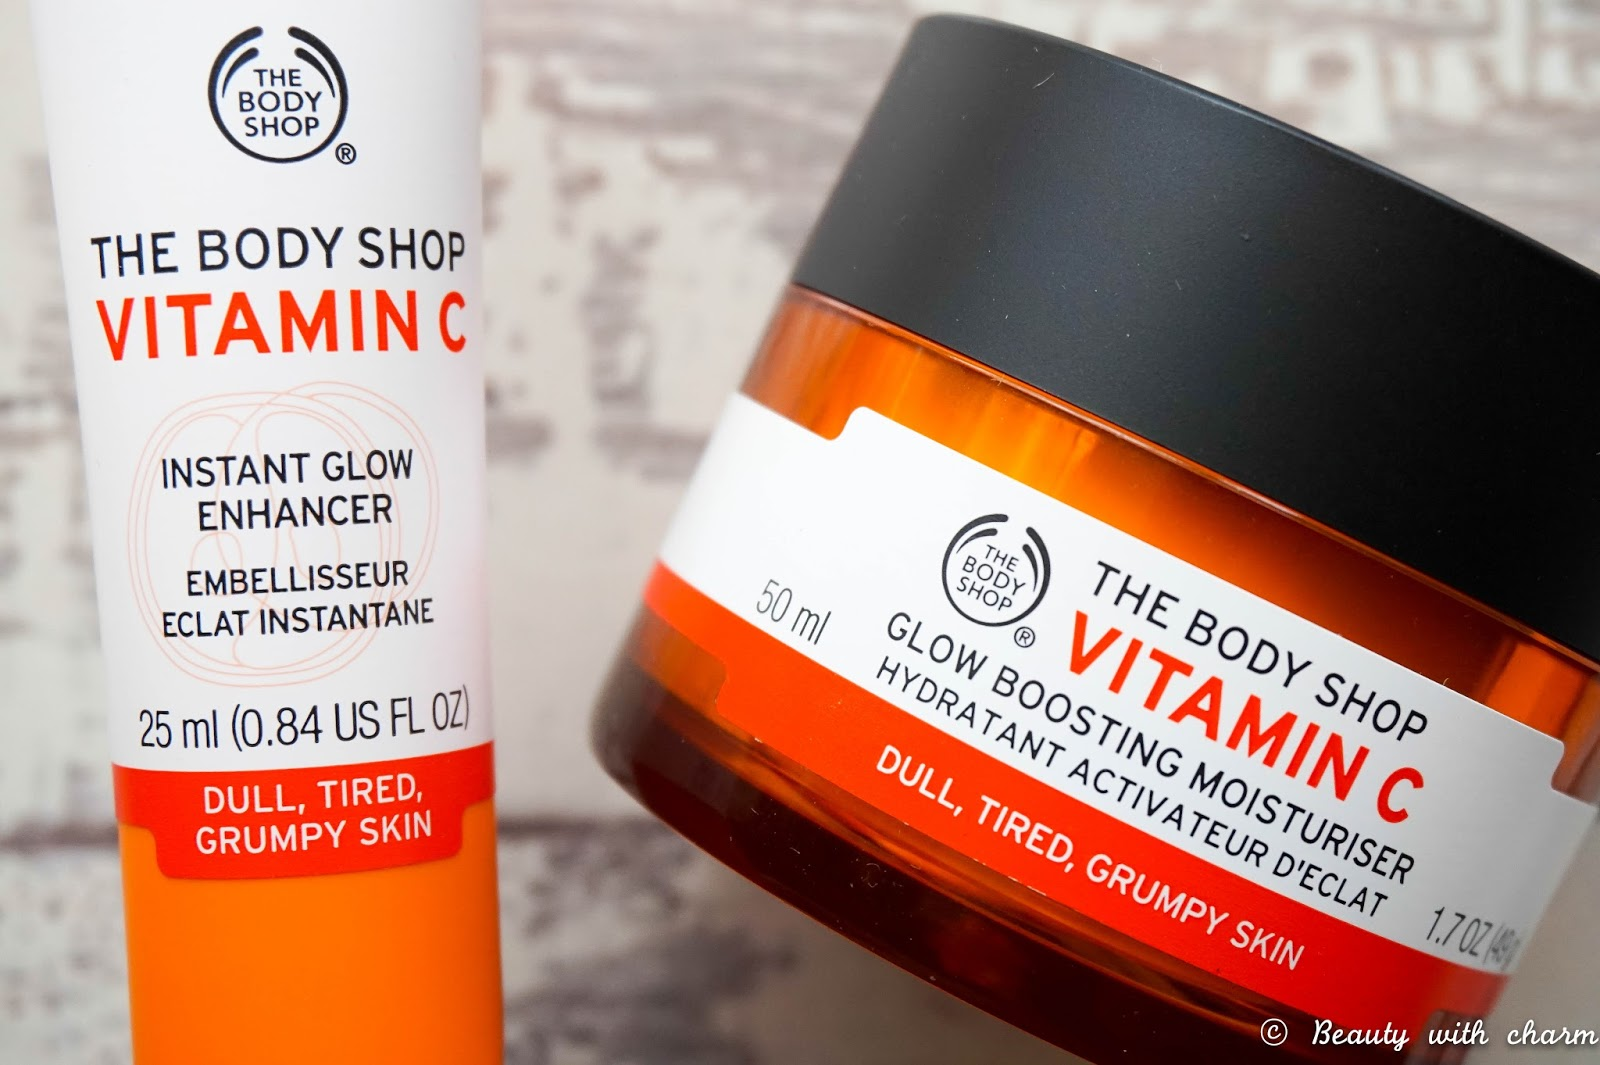 The Body Shop Vitamin C Duo, Glow Boosting Moisturiser, Instant Glow Enhancer